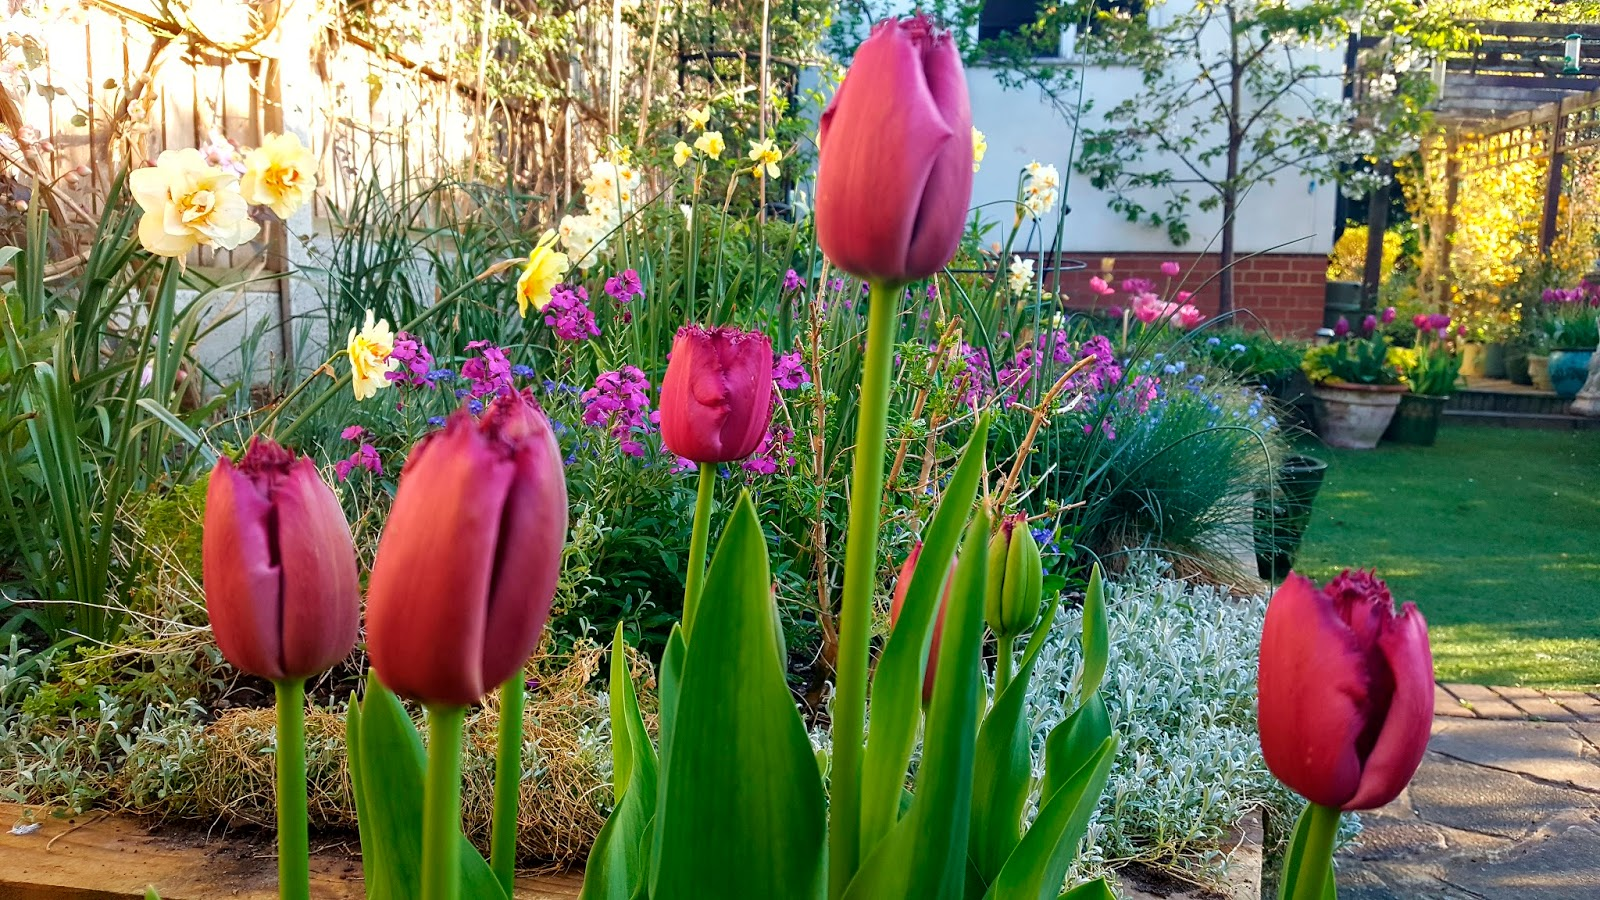 Image showing a small garden in London ablaze with purple and pink tulips and daffodils.